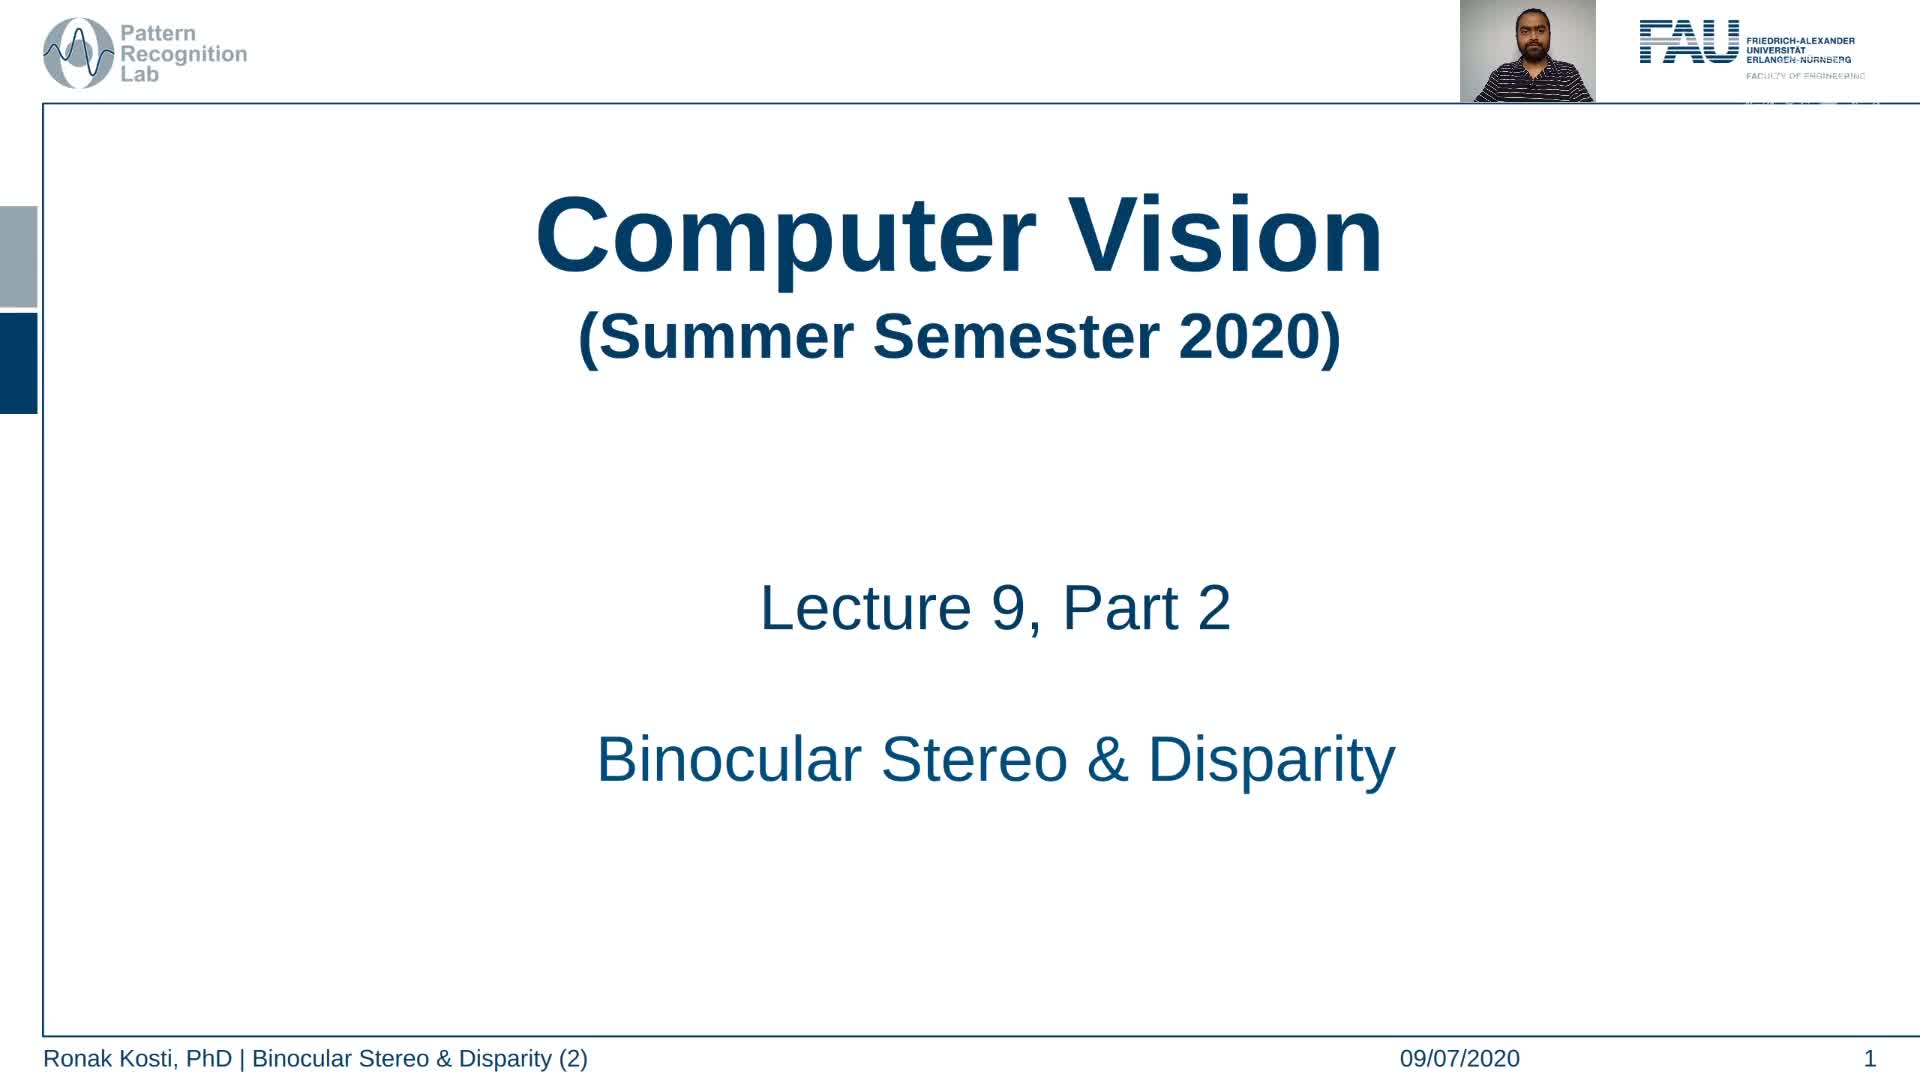 Binocular Stereo and Disparity (Lecture 9, Part 2) preview image